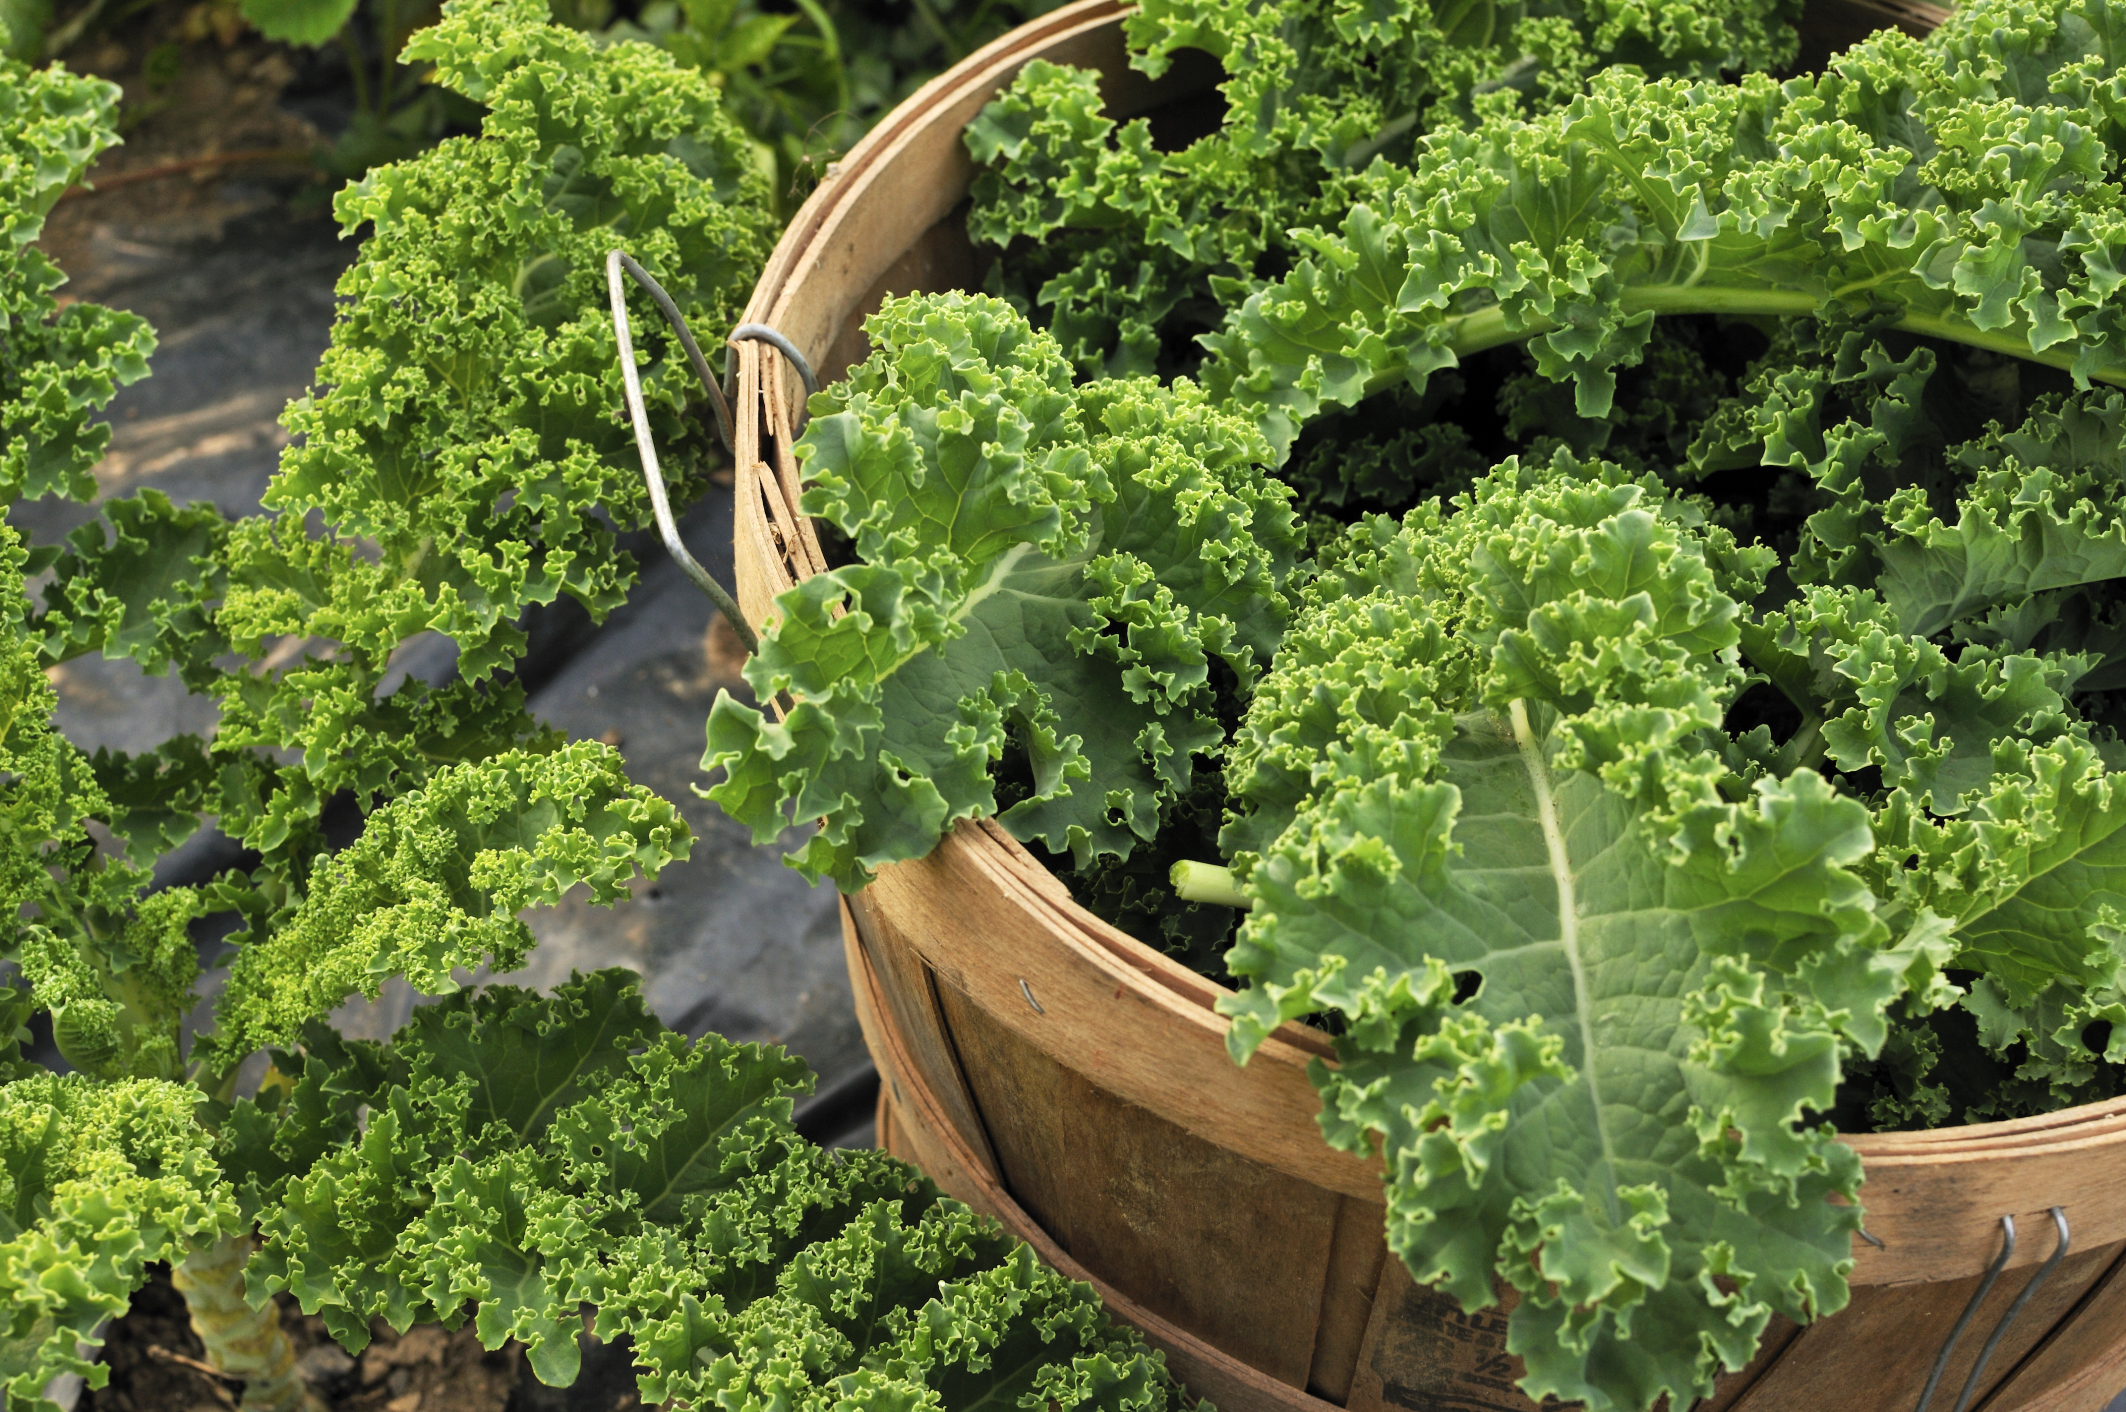 Kale yeah! Farmers work to keep up with demand